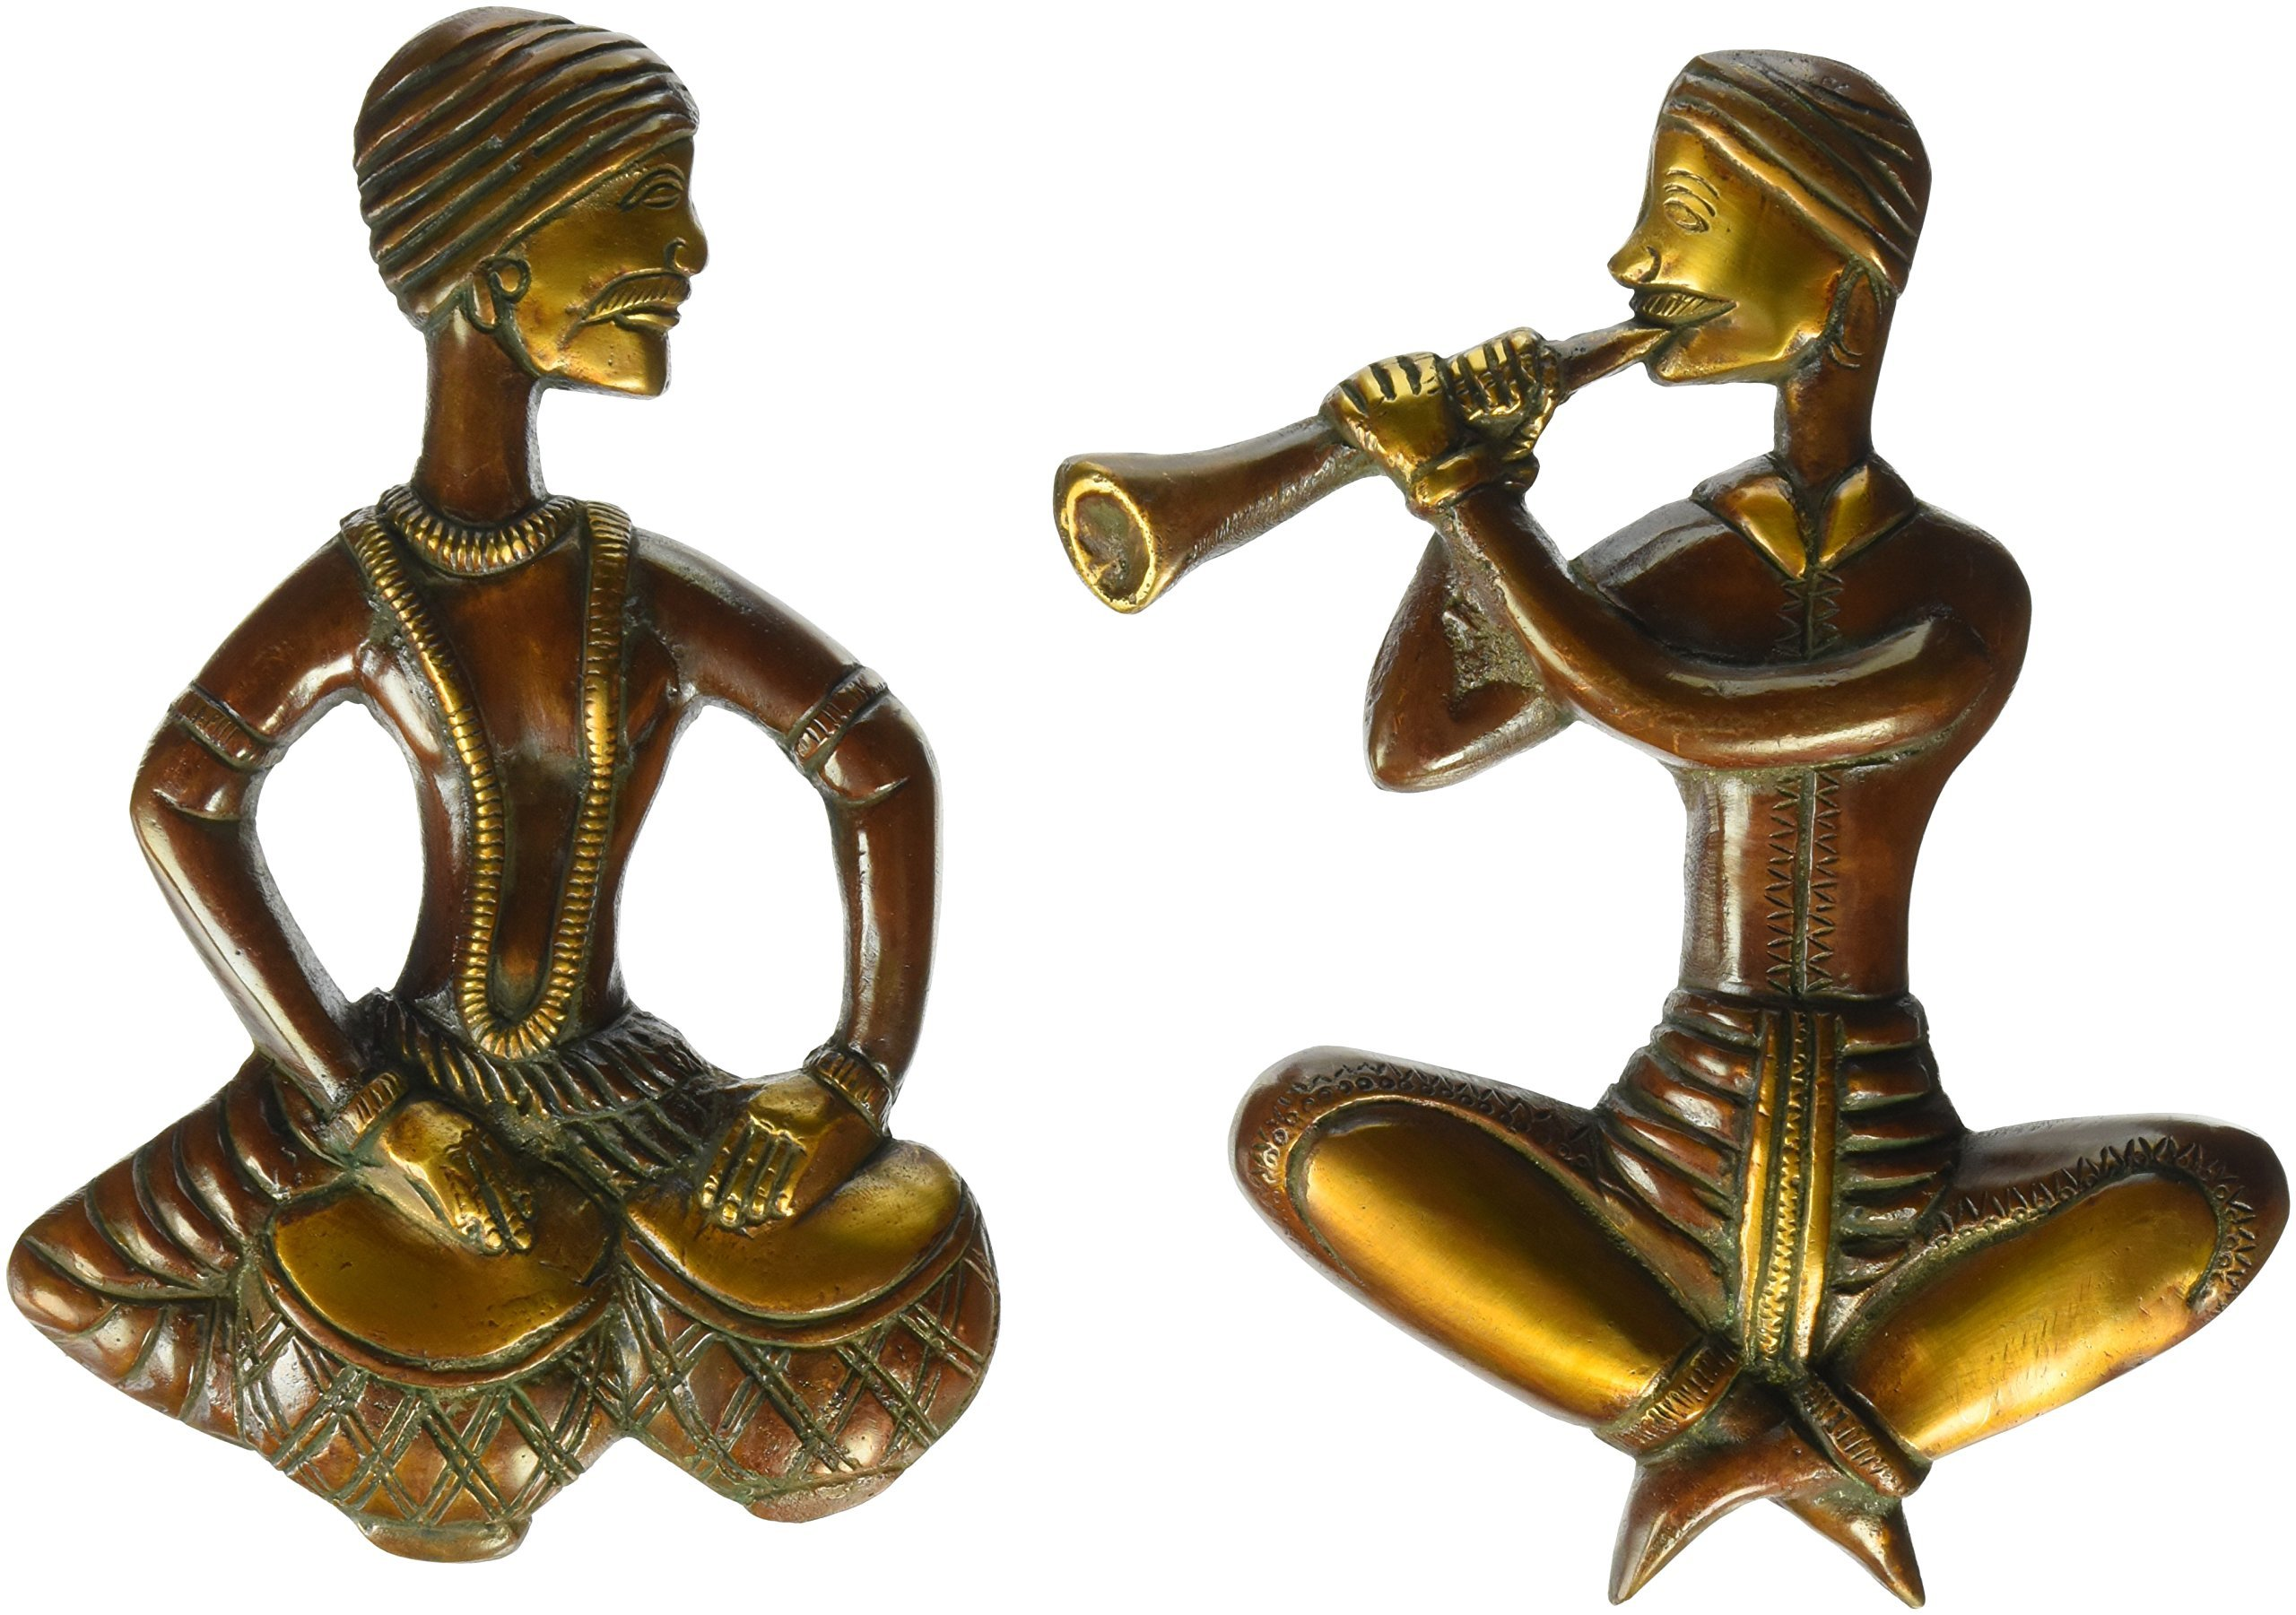 Aone India 9'' Pair of Musician Wall Hanging- Large Metal Wall Art Traditional Indian Hand Art Decor- Ethnic Home Plasma Sculpture + Cash Envelope (Pack Of 10)